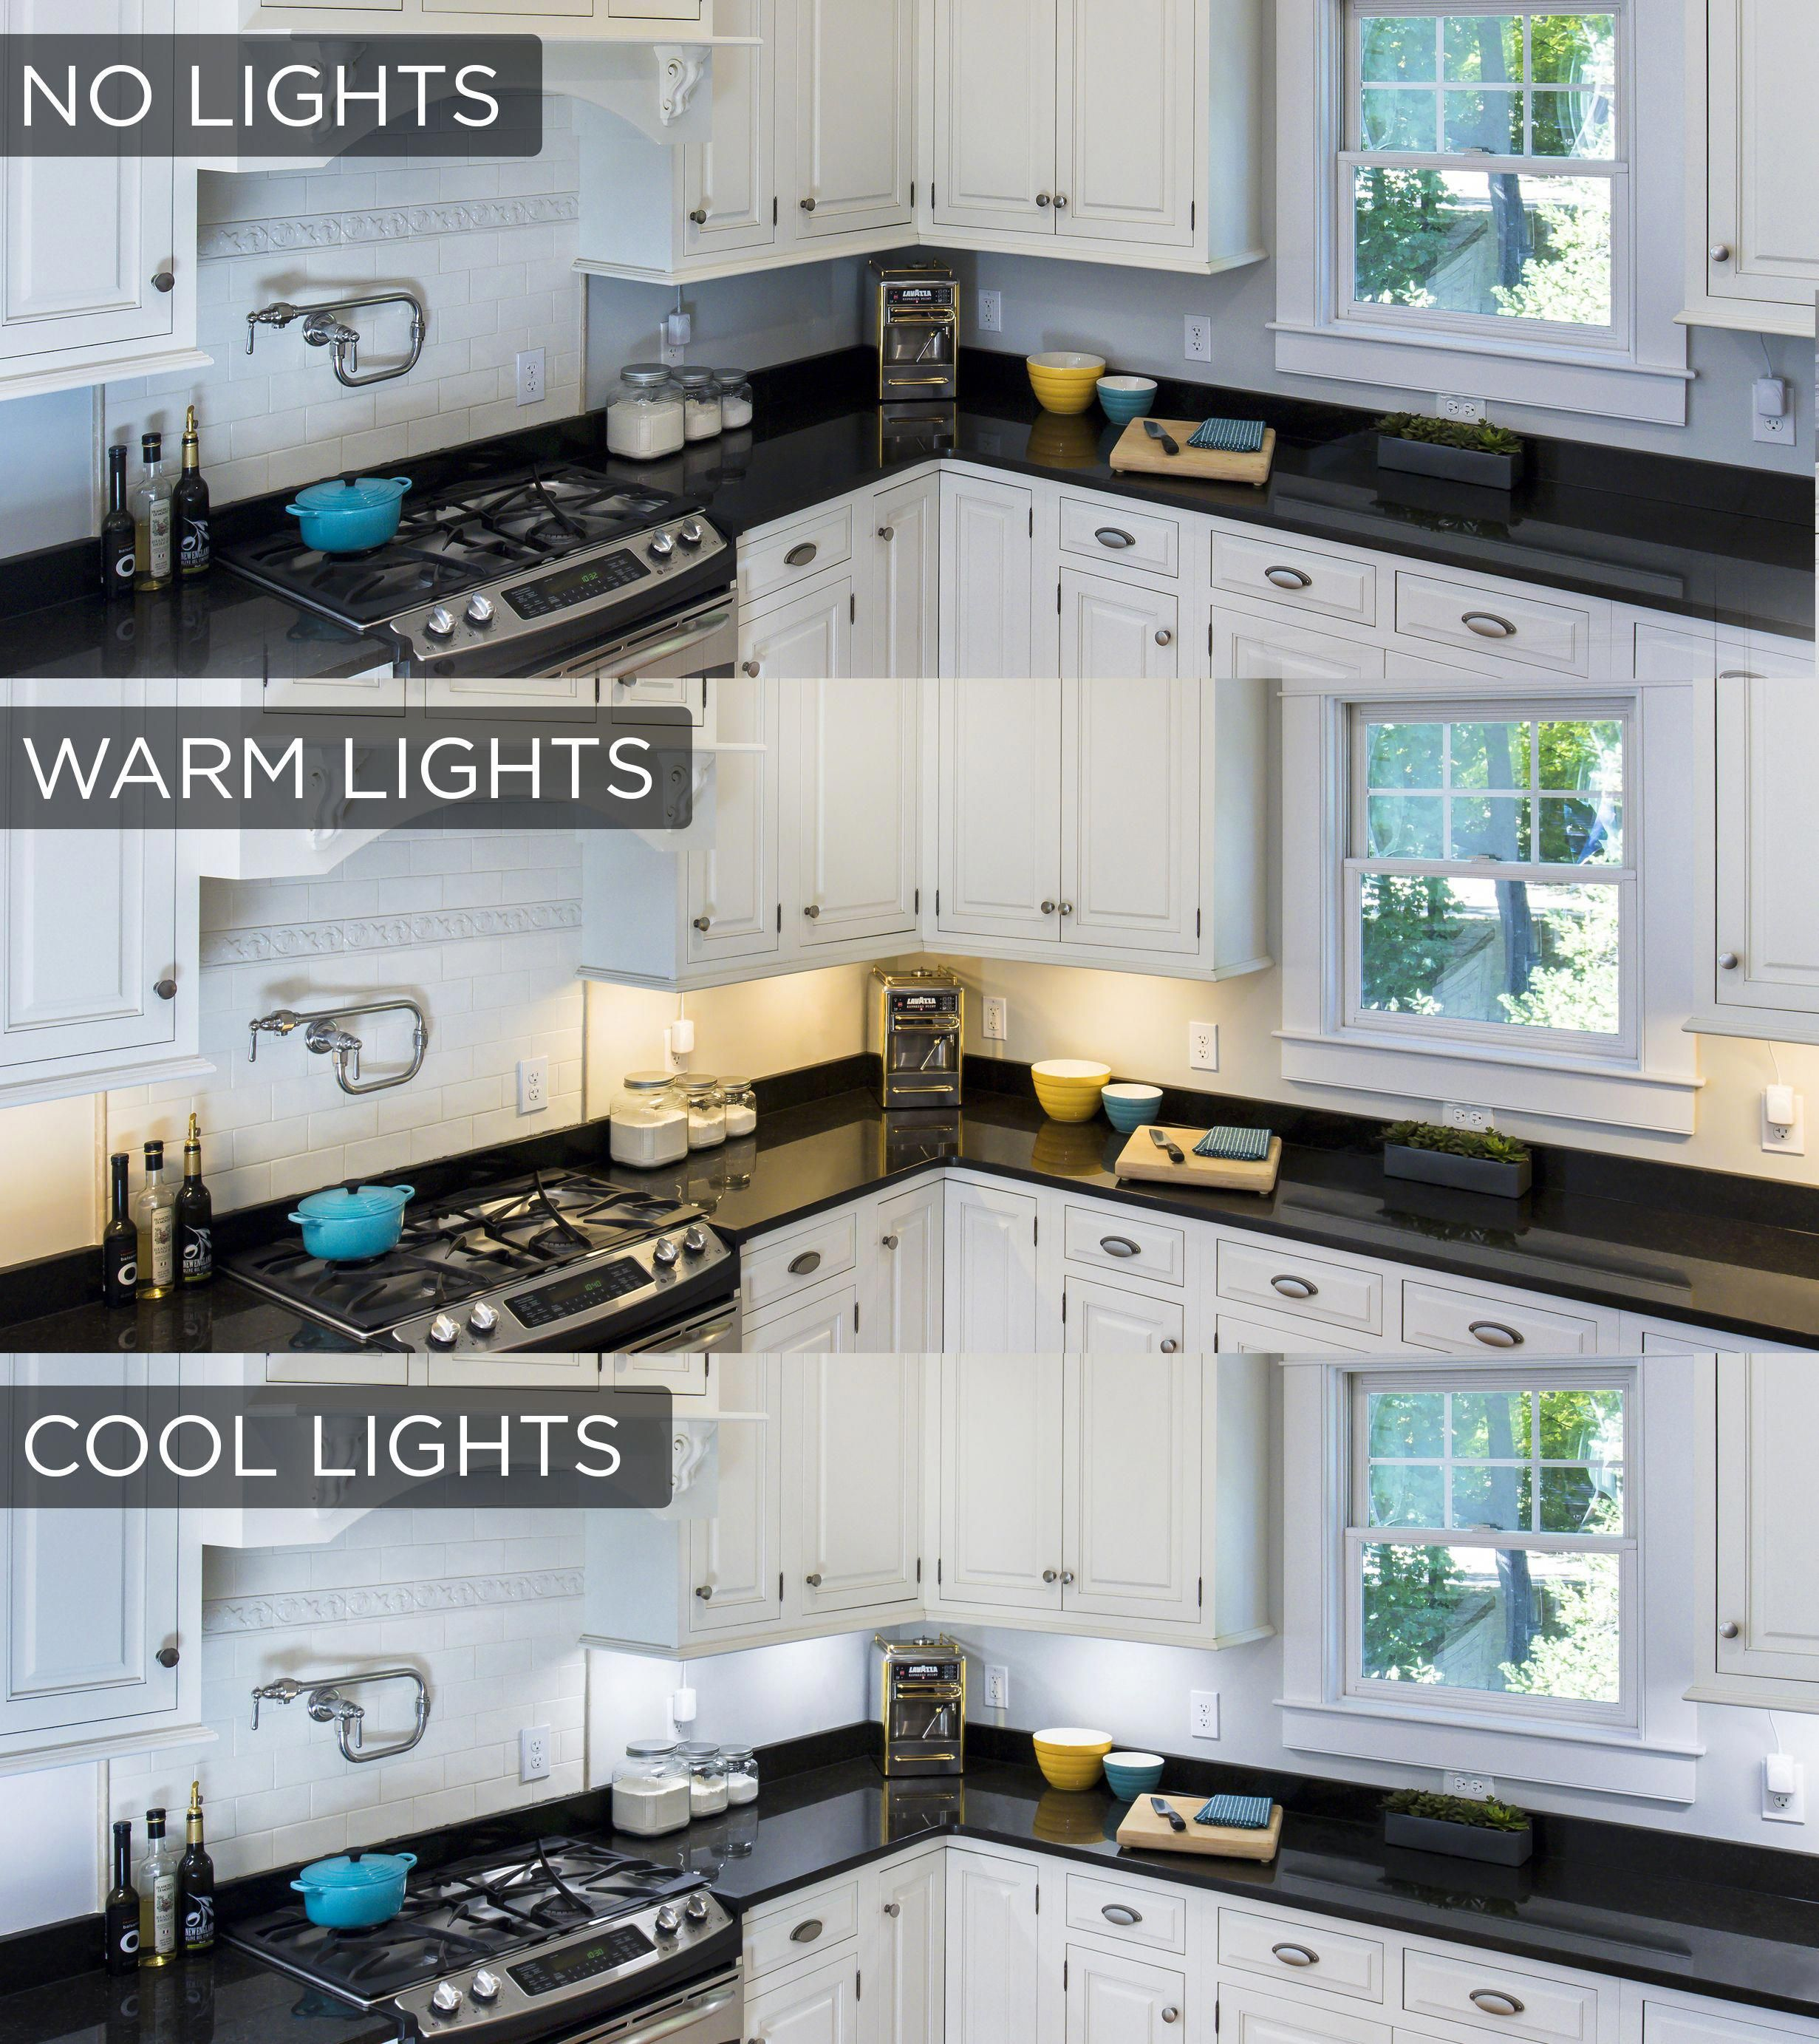 This Under Cabinet Lighting Comparison Shows The Stark